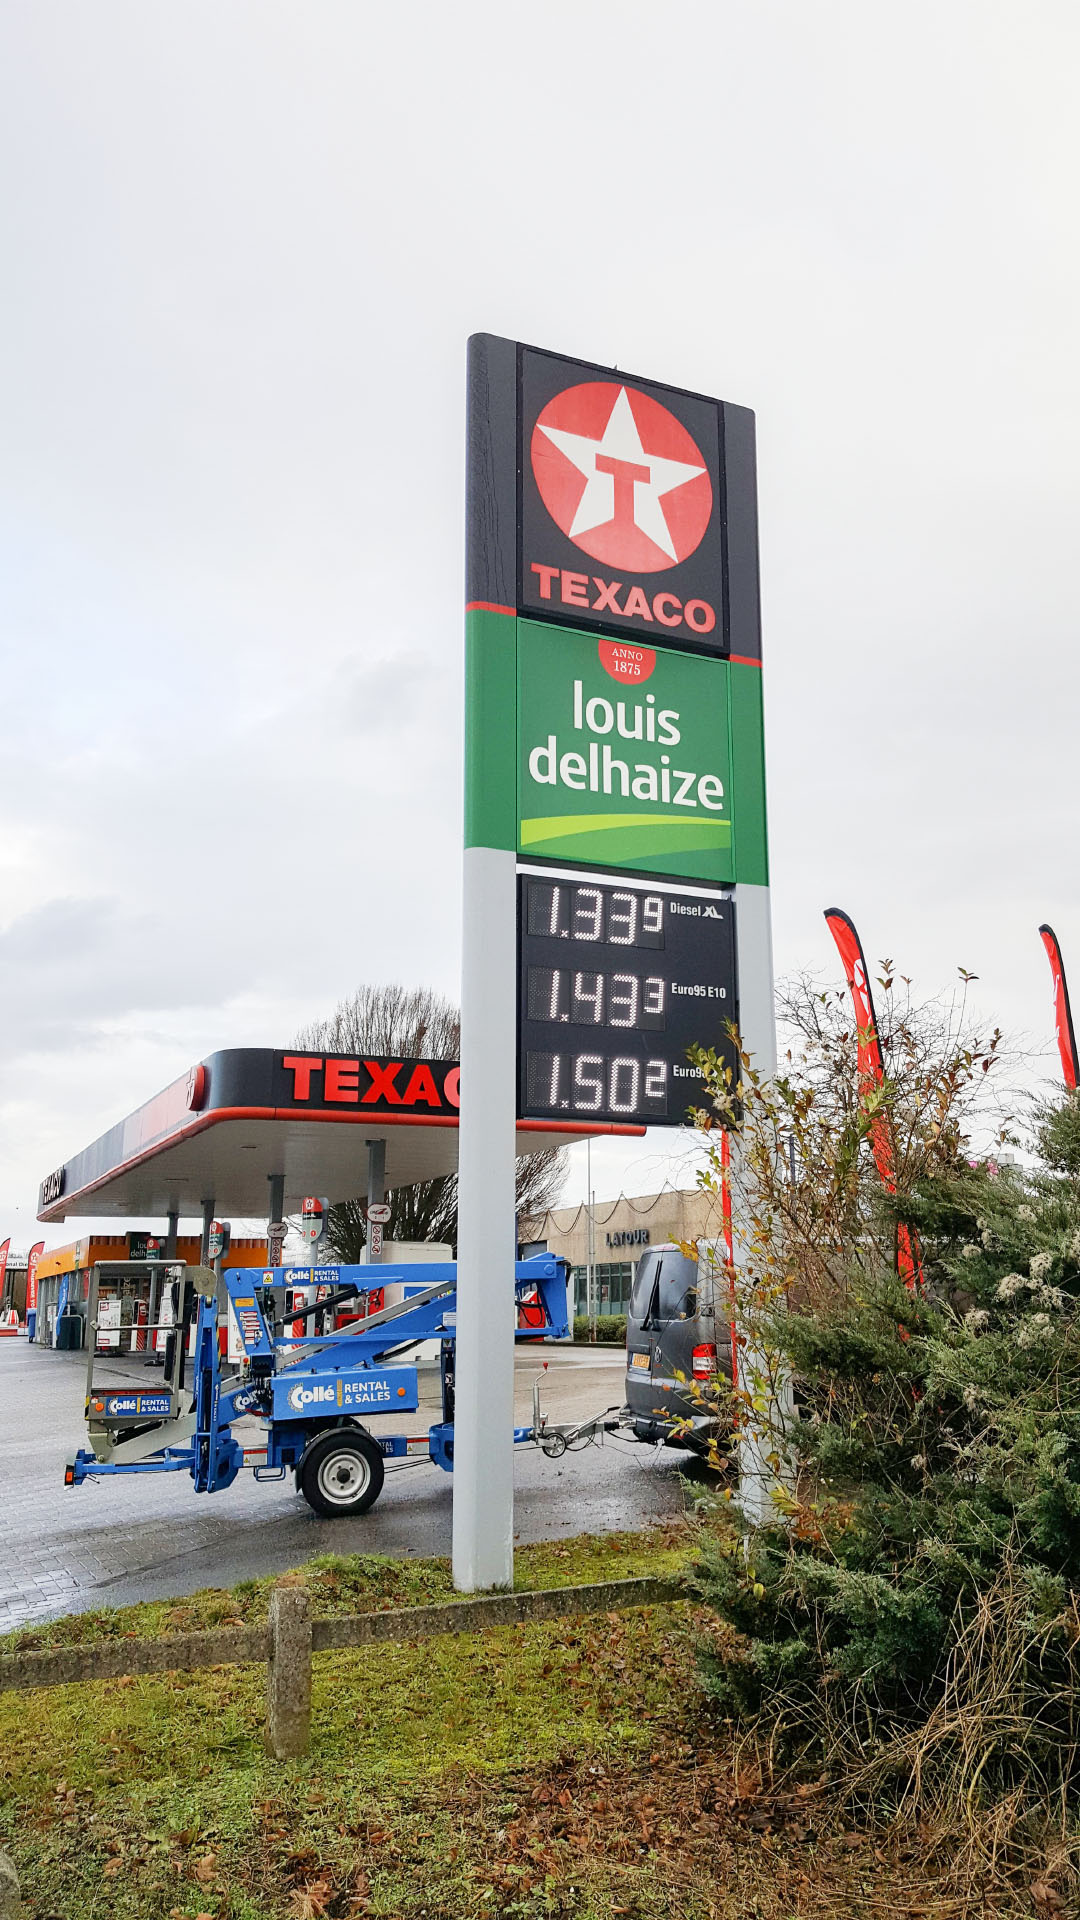 Totem met prijzendisplay Texaco station